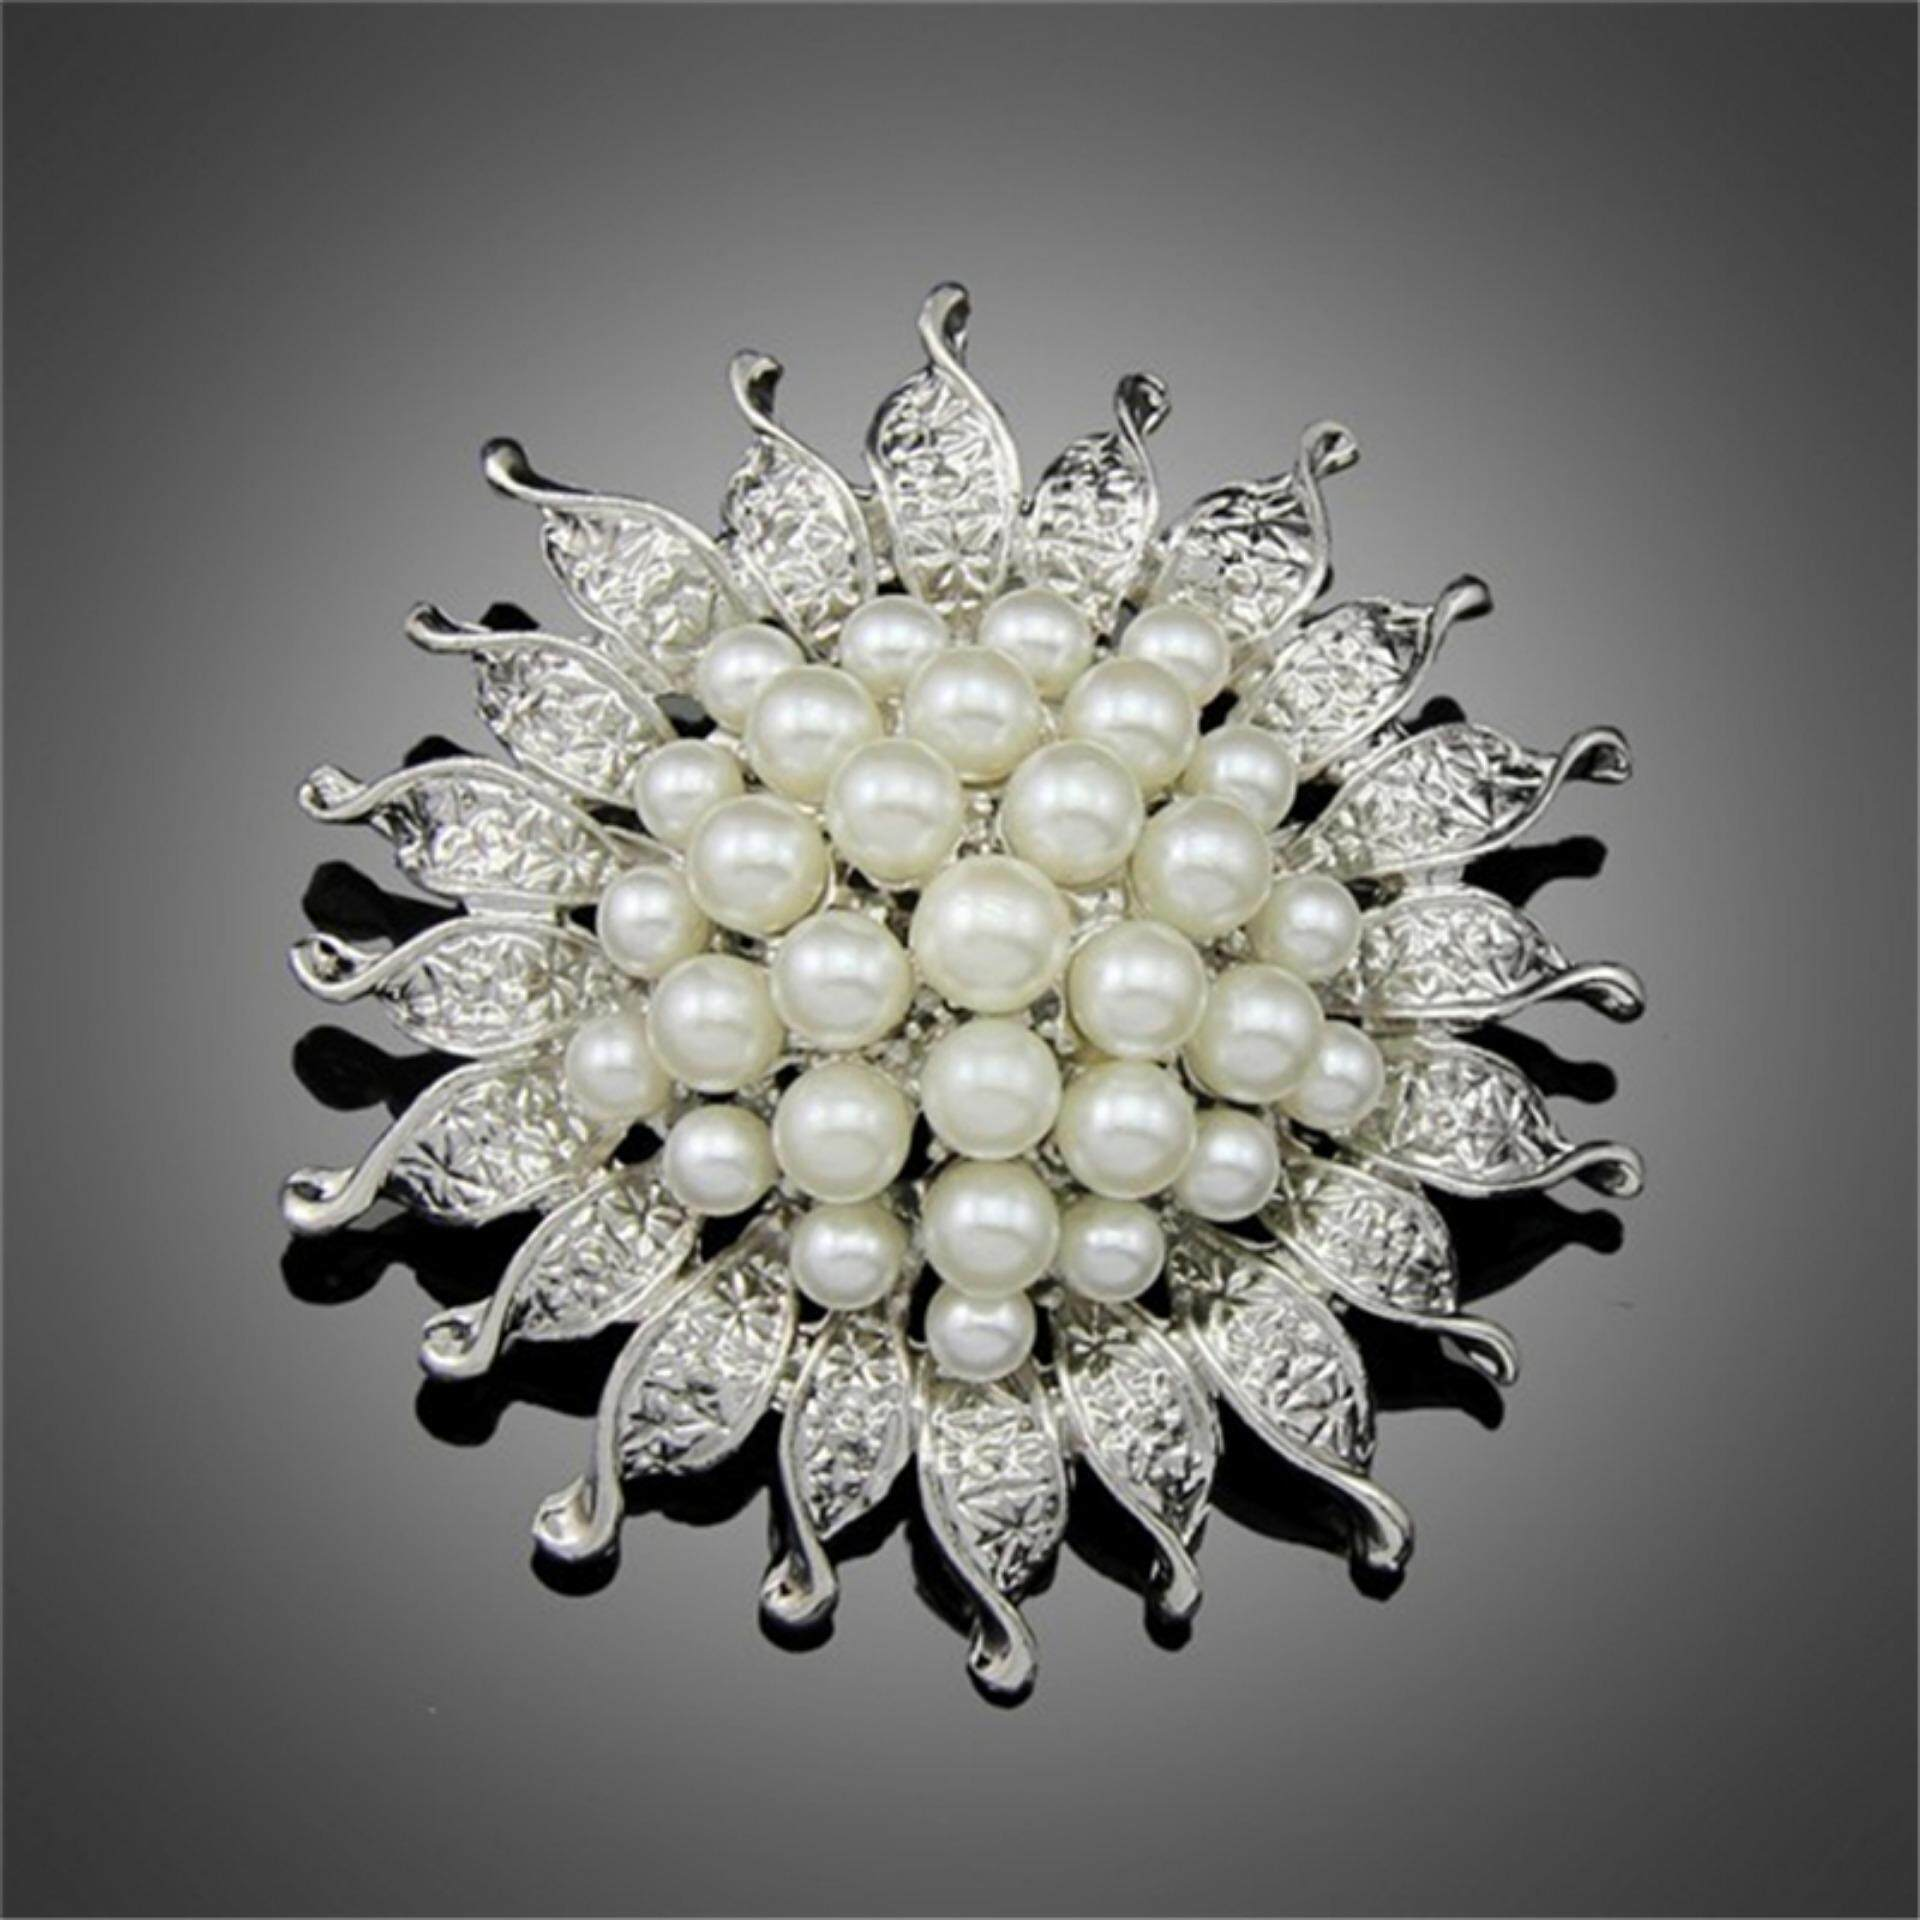 Vintage Silver Plated Imitation Pearl Beads Flower Brooch For Wedding Gift - intl